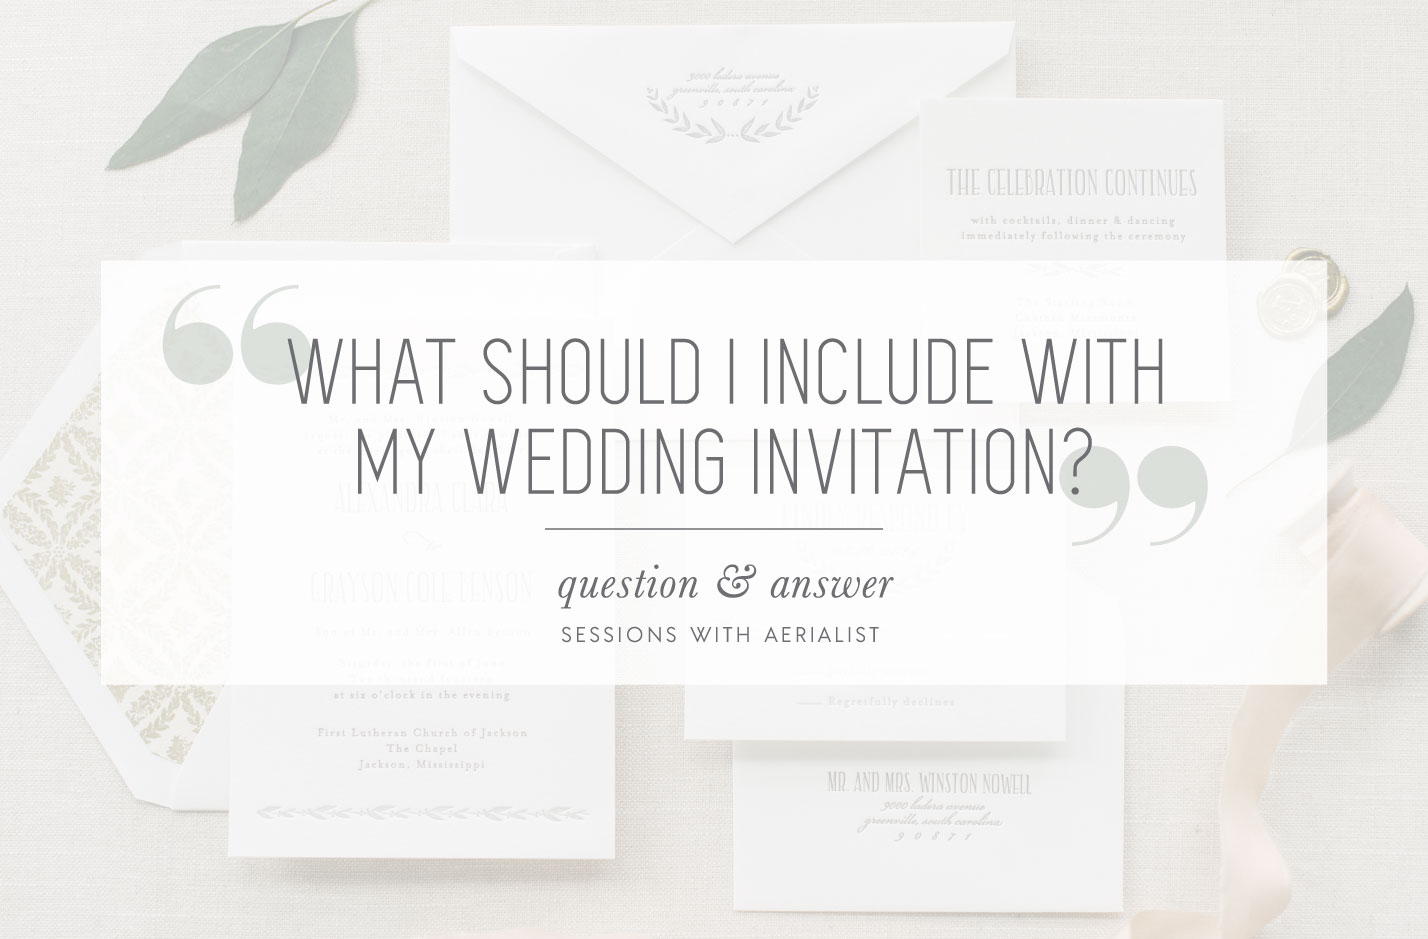 Aerialist Press  What to include with my wedding invitation